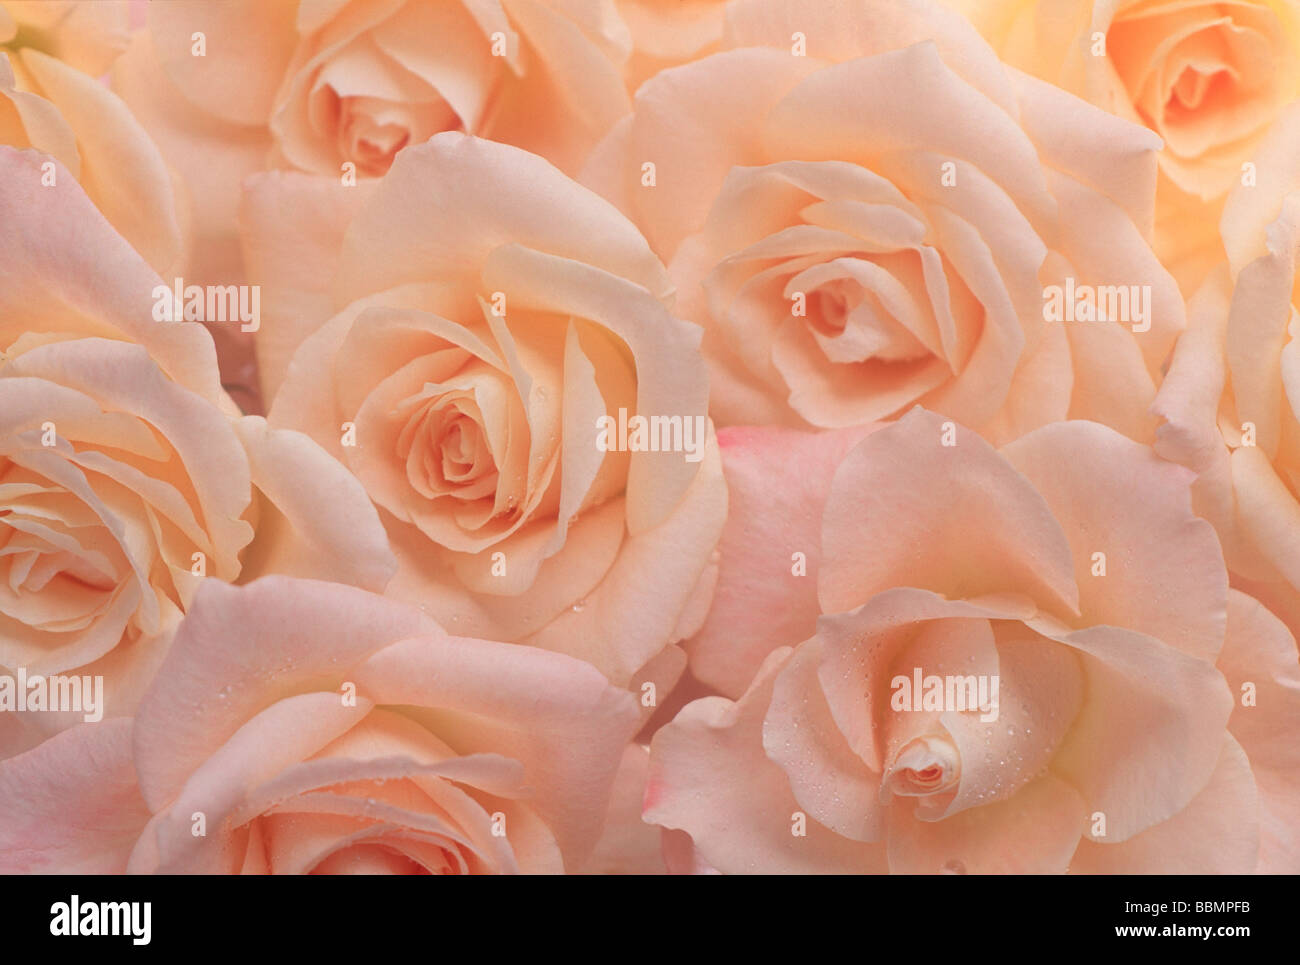 close up of peach colored roses stock photo 24428303 alamy